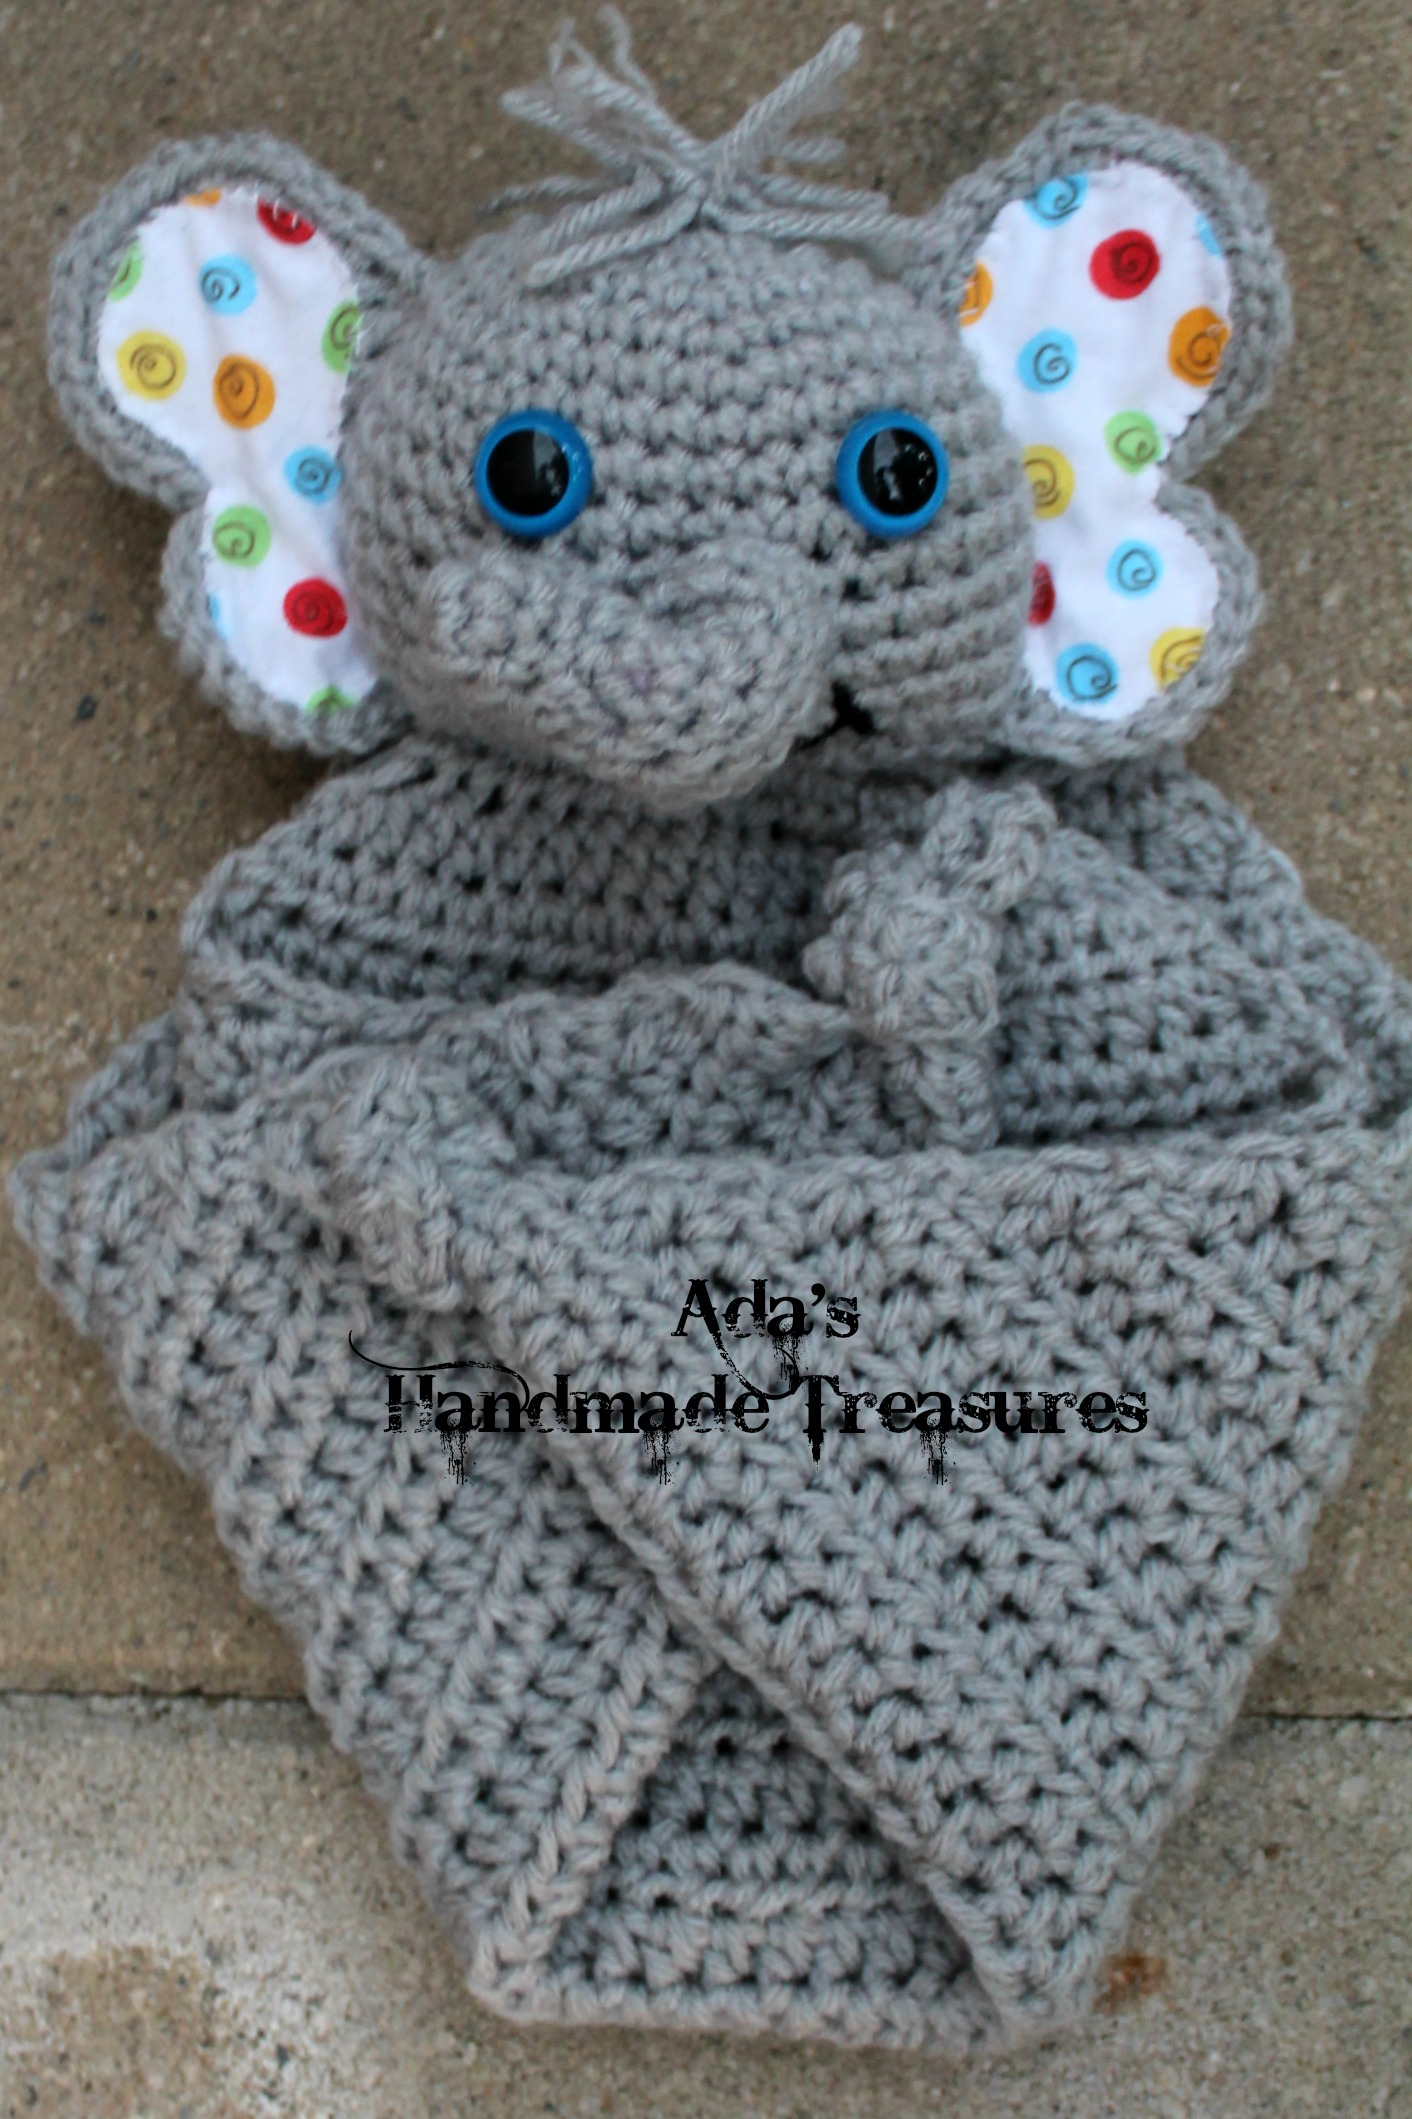 Crochet Pattern For Elephant Blanket : Crochet Cuddle blanket- ELEPHANT ? Adas Handmade ...